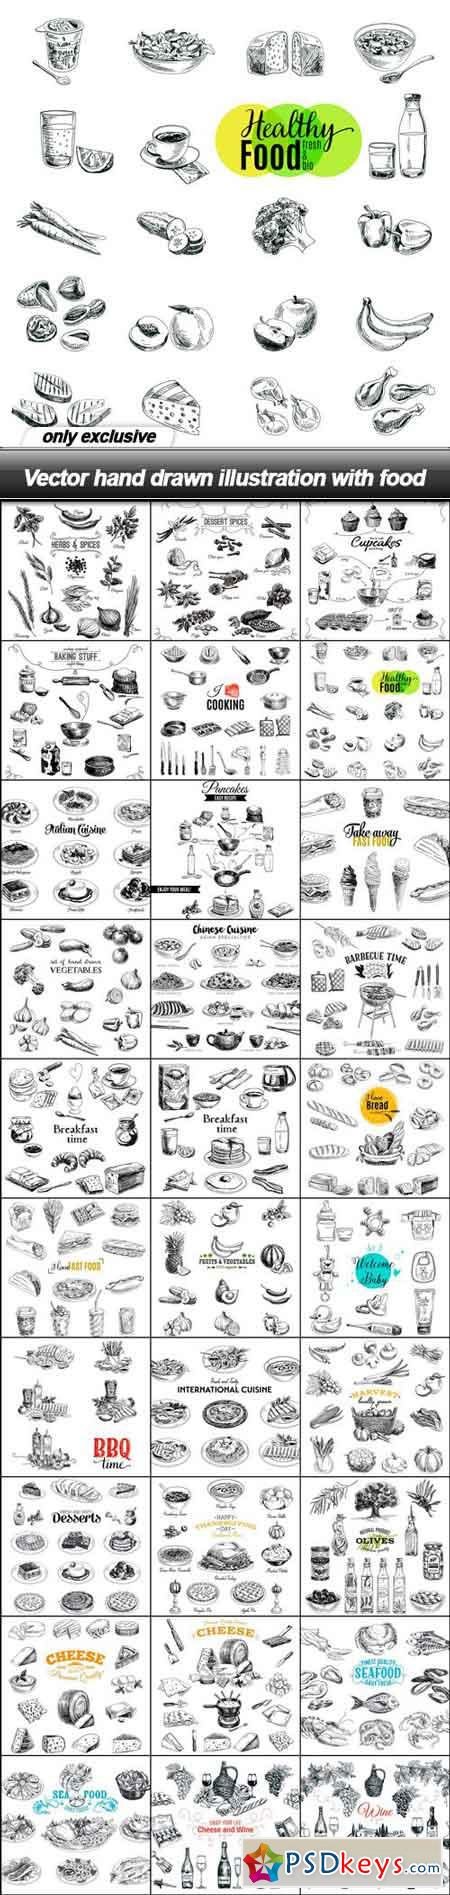 Vector hand drawn illustration with food - 30 EPS